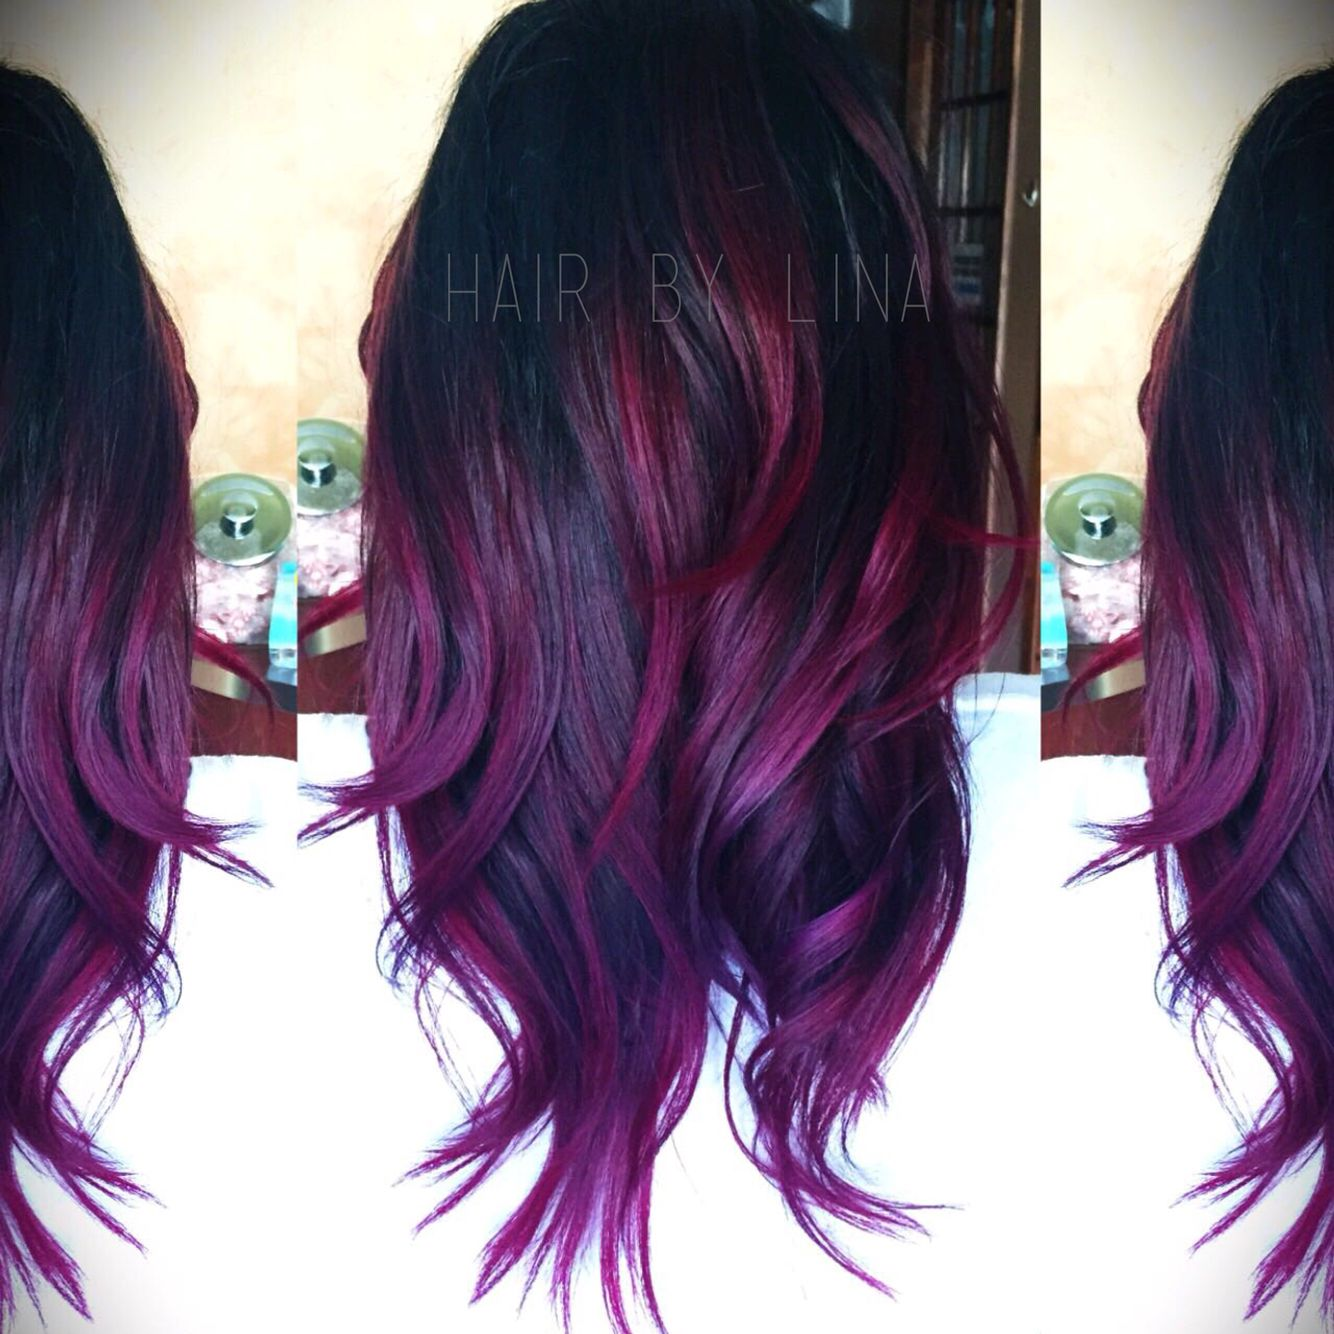 Haarfarbe Dunkelrot Lila Purple And Magenta Balayage Ombré Hair By Lina